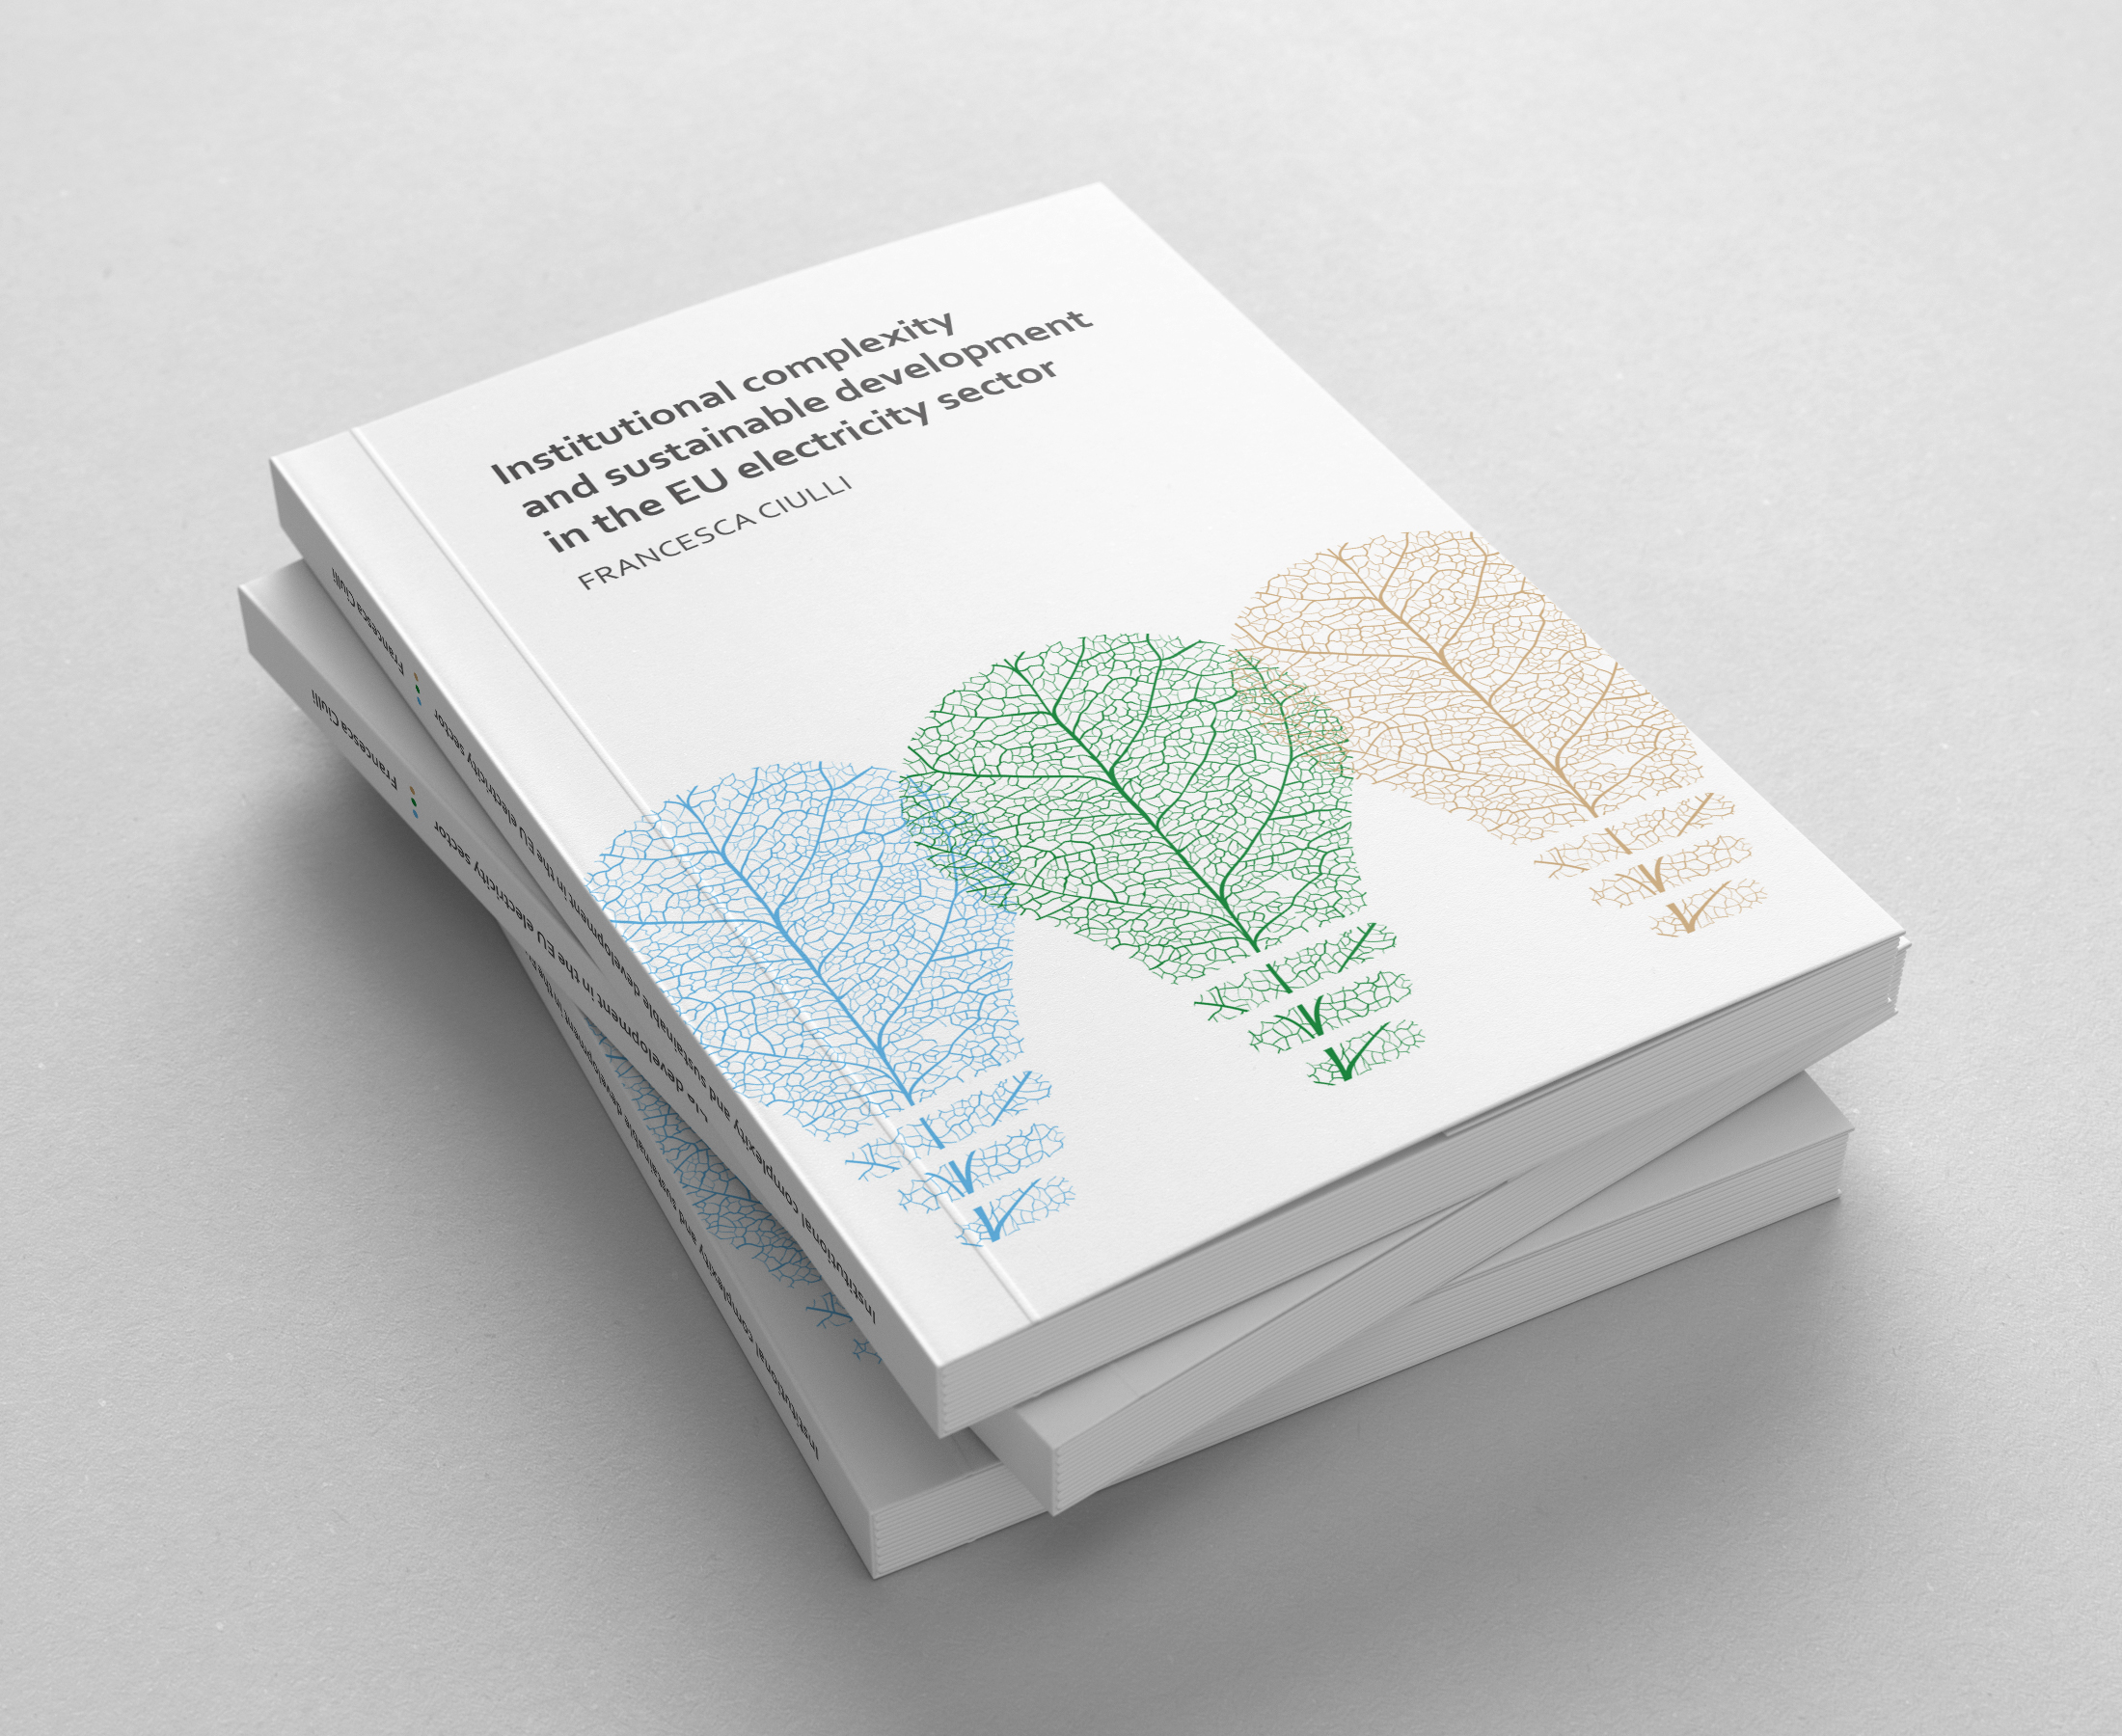 design phd thesis Full dissertation title understanding design thinking in practice: a qualitative study of design led professionals working with large organisations abstract design thinking is a collaborative and human centred approach to solving problems.